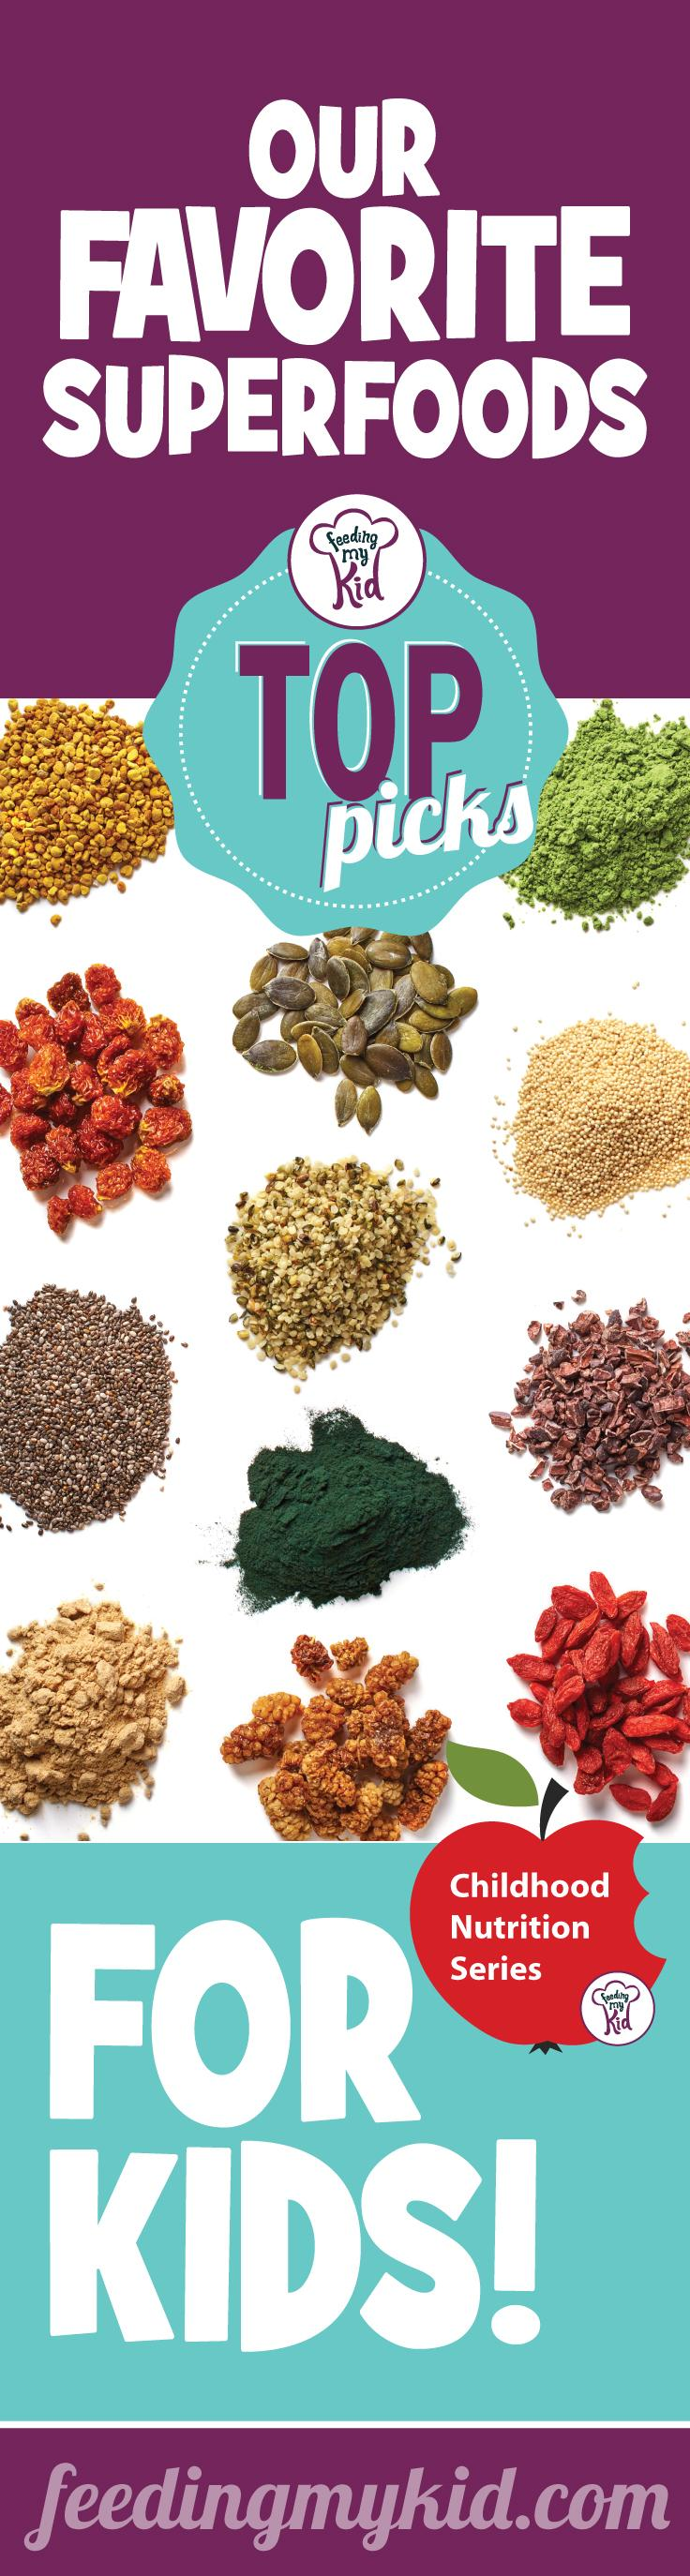 Top Picks: Our Favorite SuperFoods for Kids - Superfoods are naturally occurring foods, such as fruits and vegetables that are high in essential nutrients, such as minerals, antioxidants and vitamins. Most, if not all of superfoods can be found at your local market, in your pantry or in your refrigerator. They're super tasty and insanely good for you and your kids!